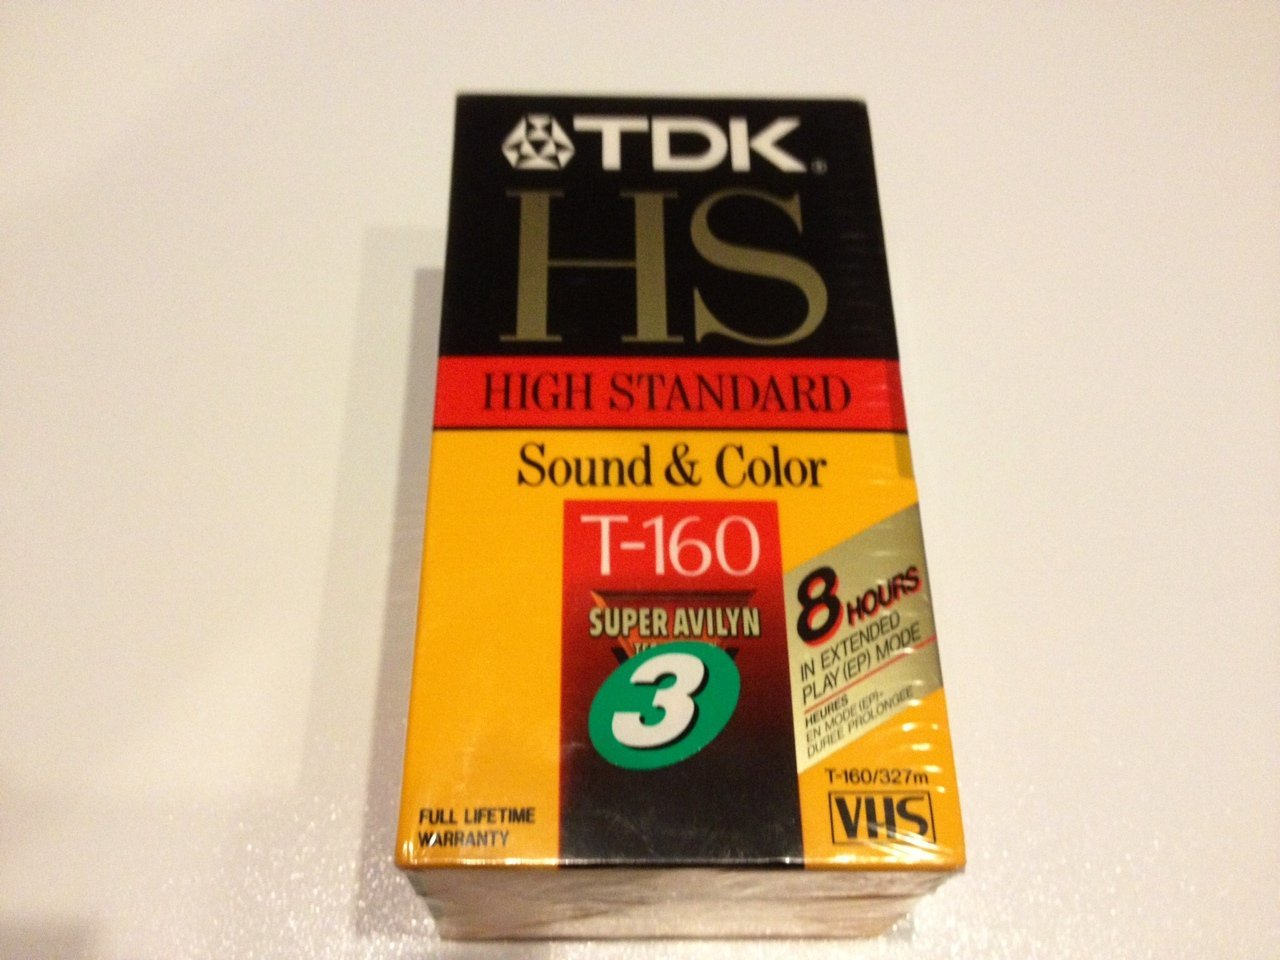 8 hours in EP Mode 1 count TDK HS T-160 High Standard Sound /& Color VHS Video Cassette Tape